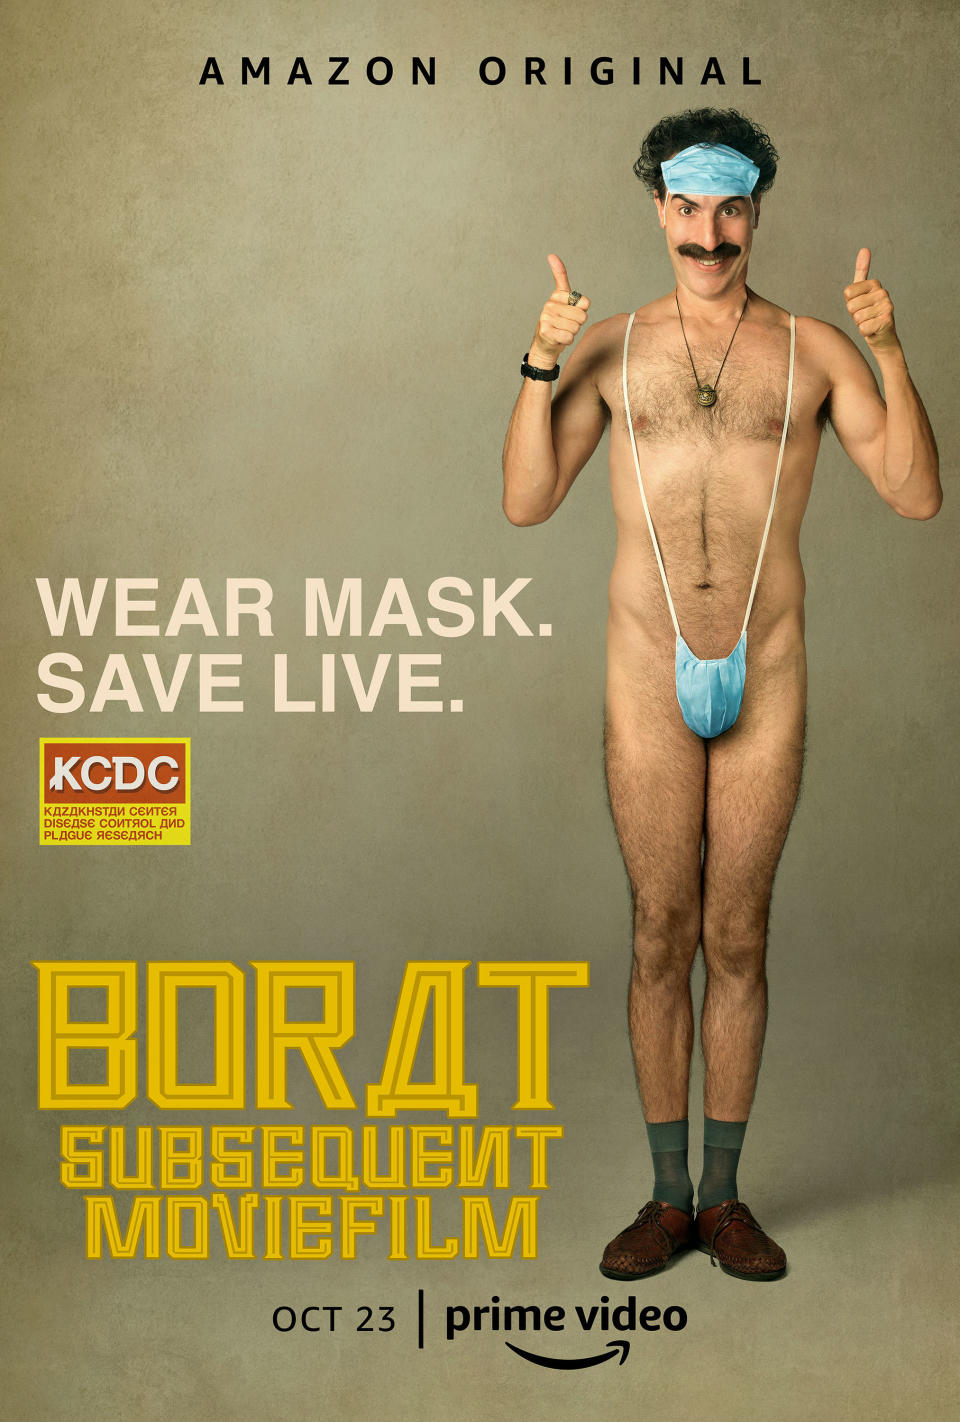 New poster for 'Borat Subsequent Moviefilm'. (Credit: Amazon)